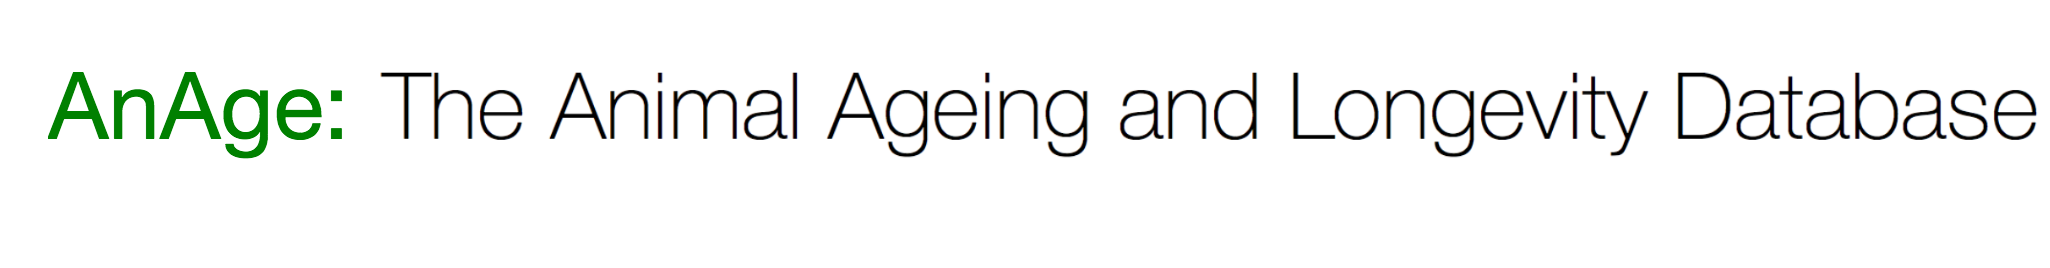 AnAge: The Animal Ageing and Longevity Database